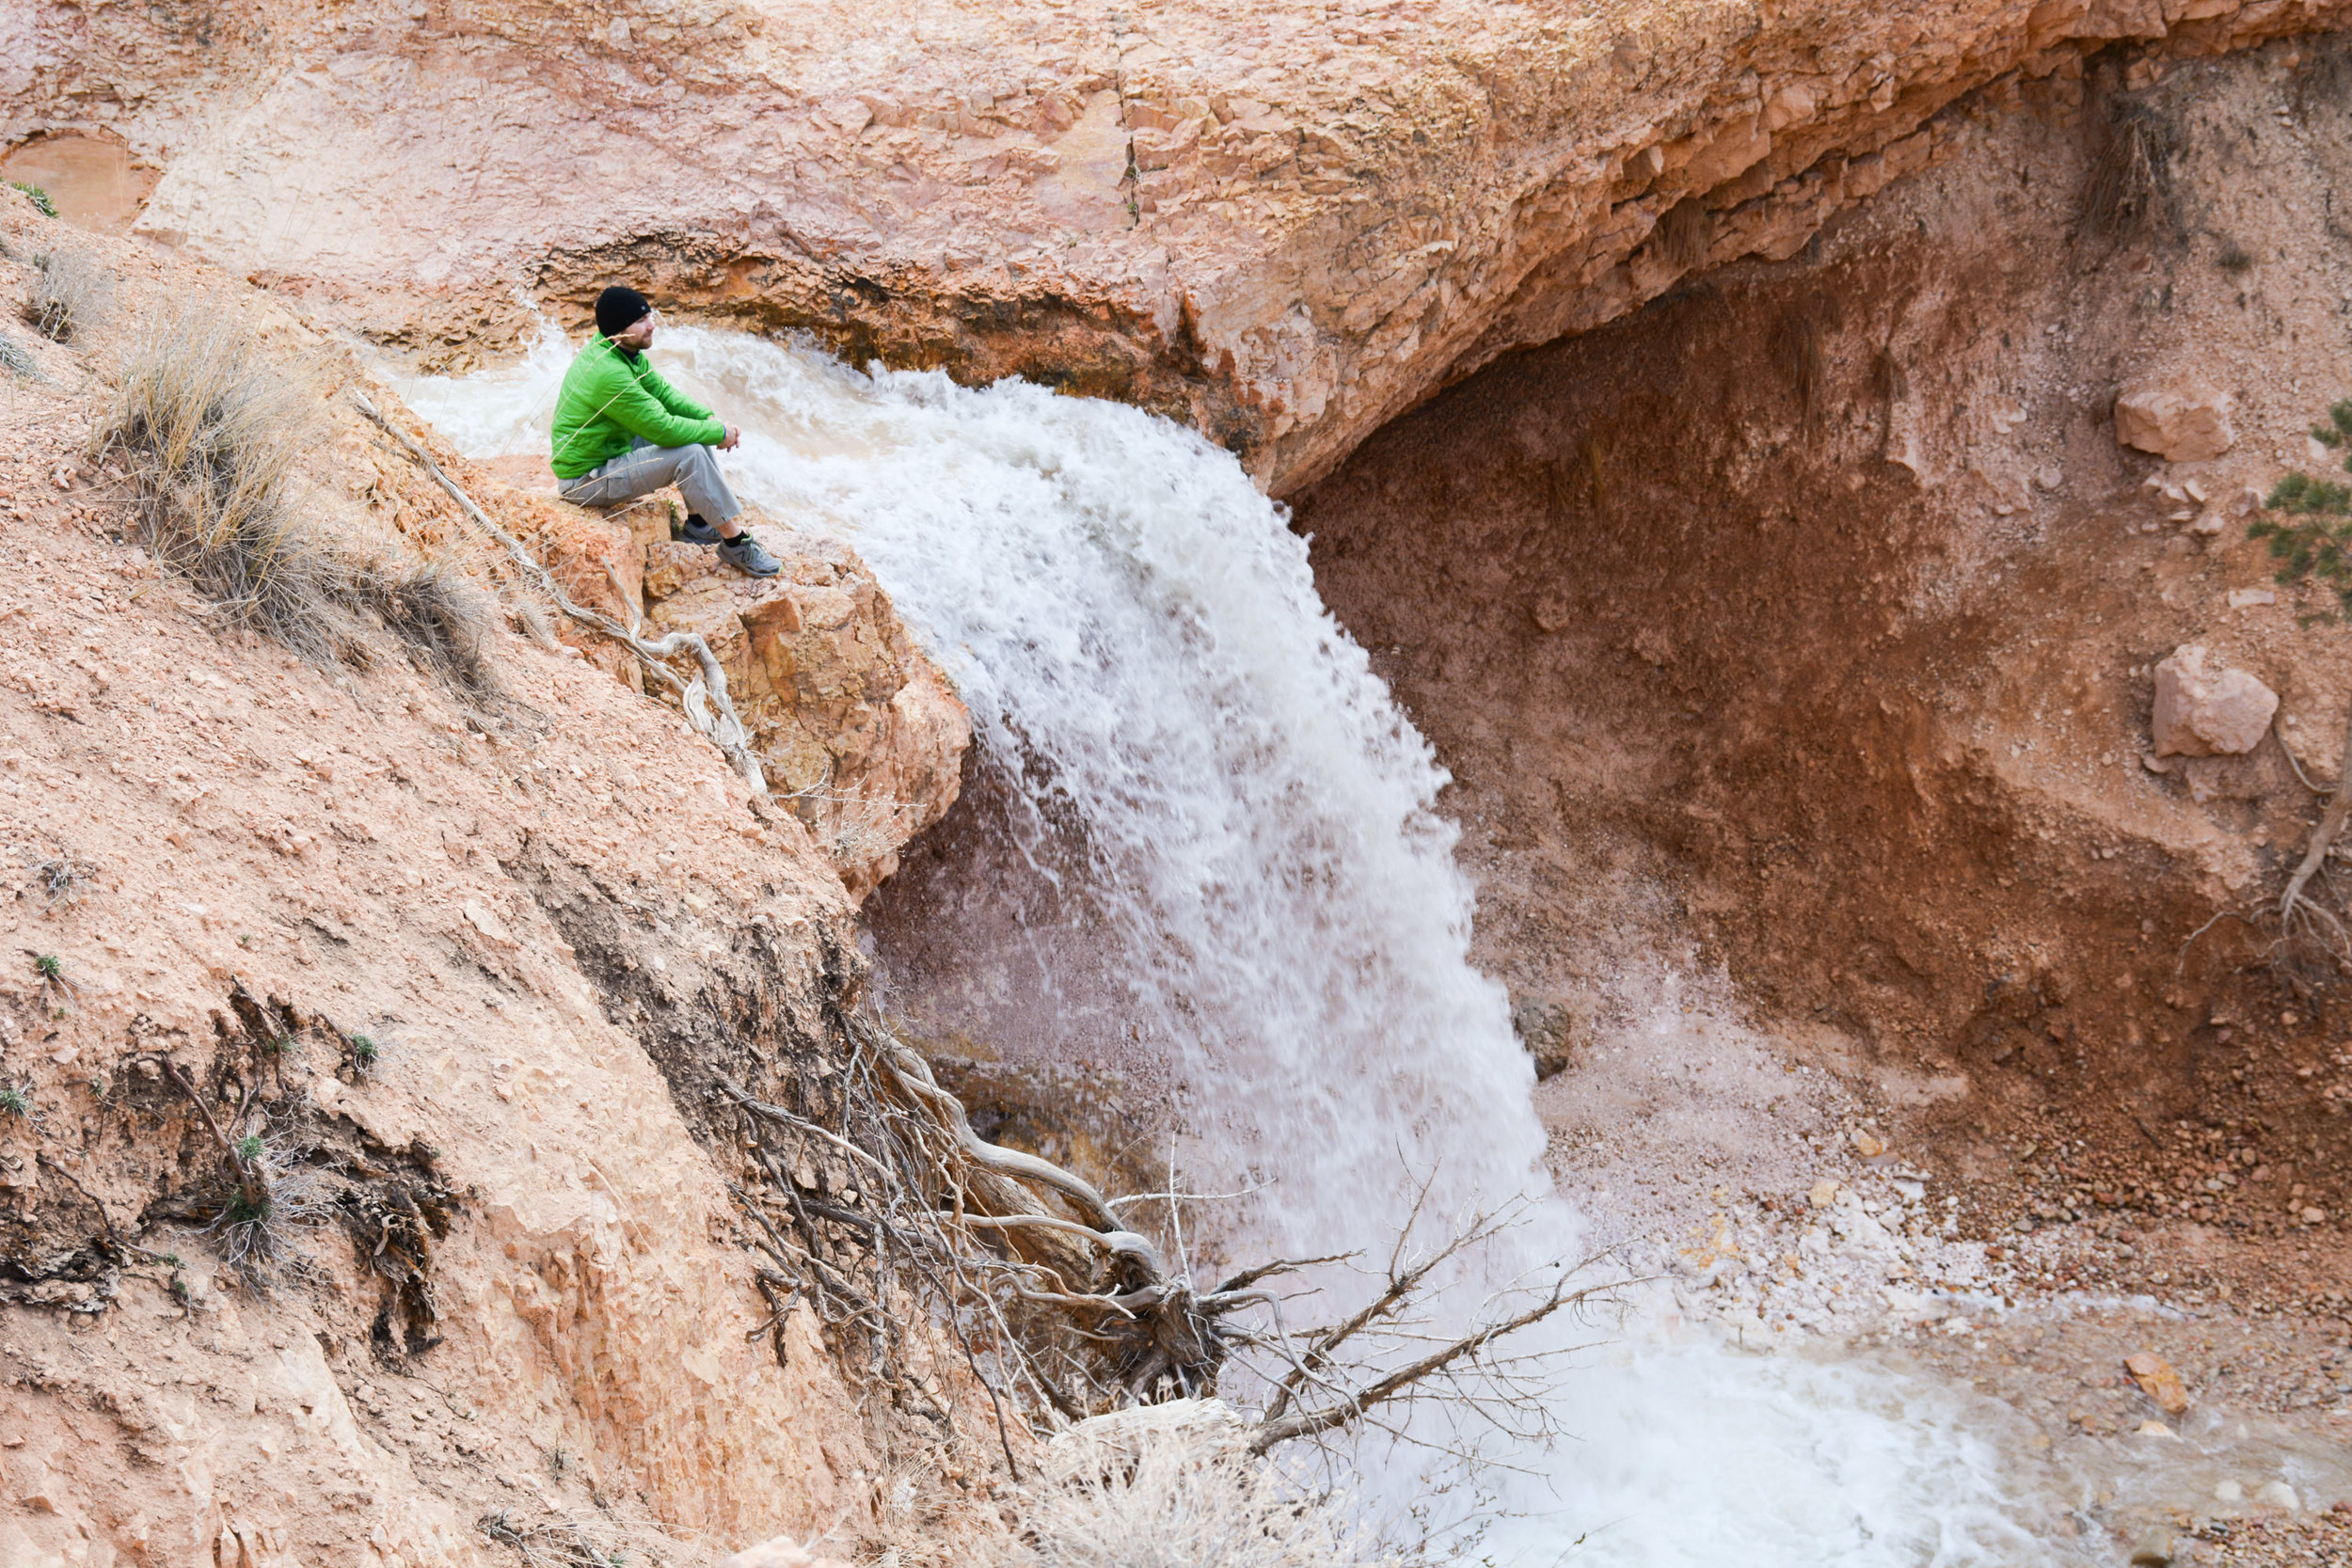 Contemplating near a waterfall in Bryce Canyon